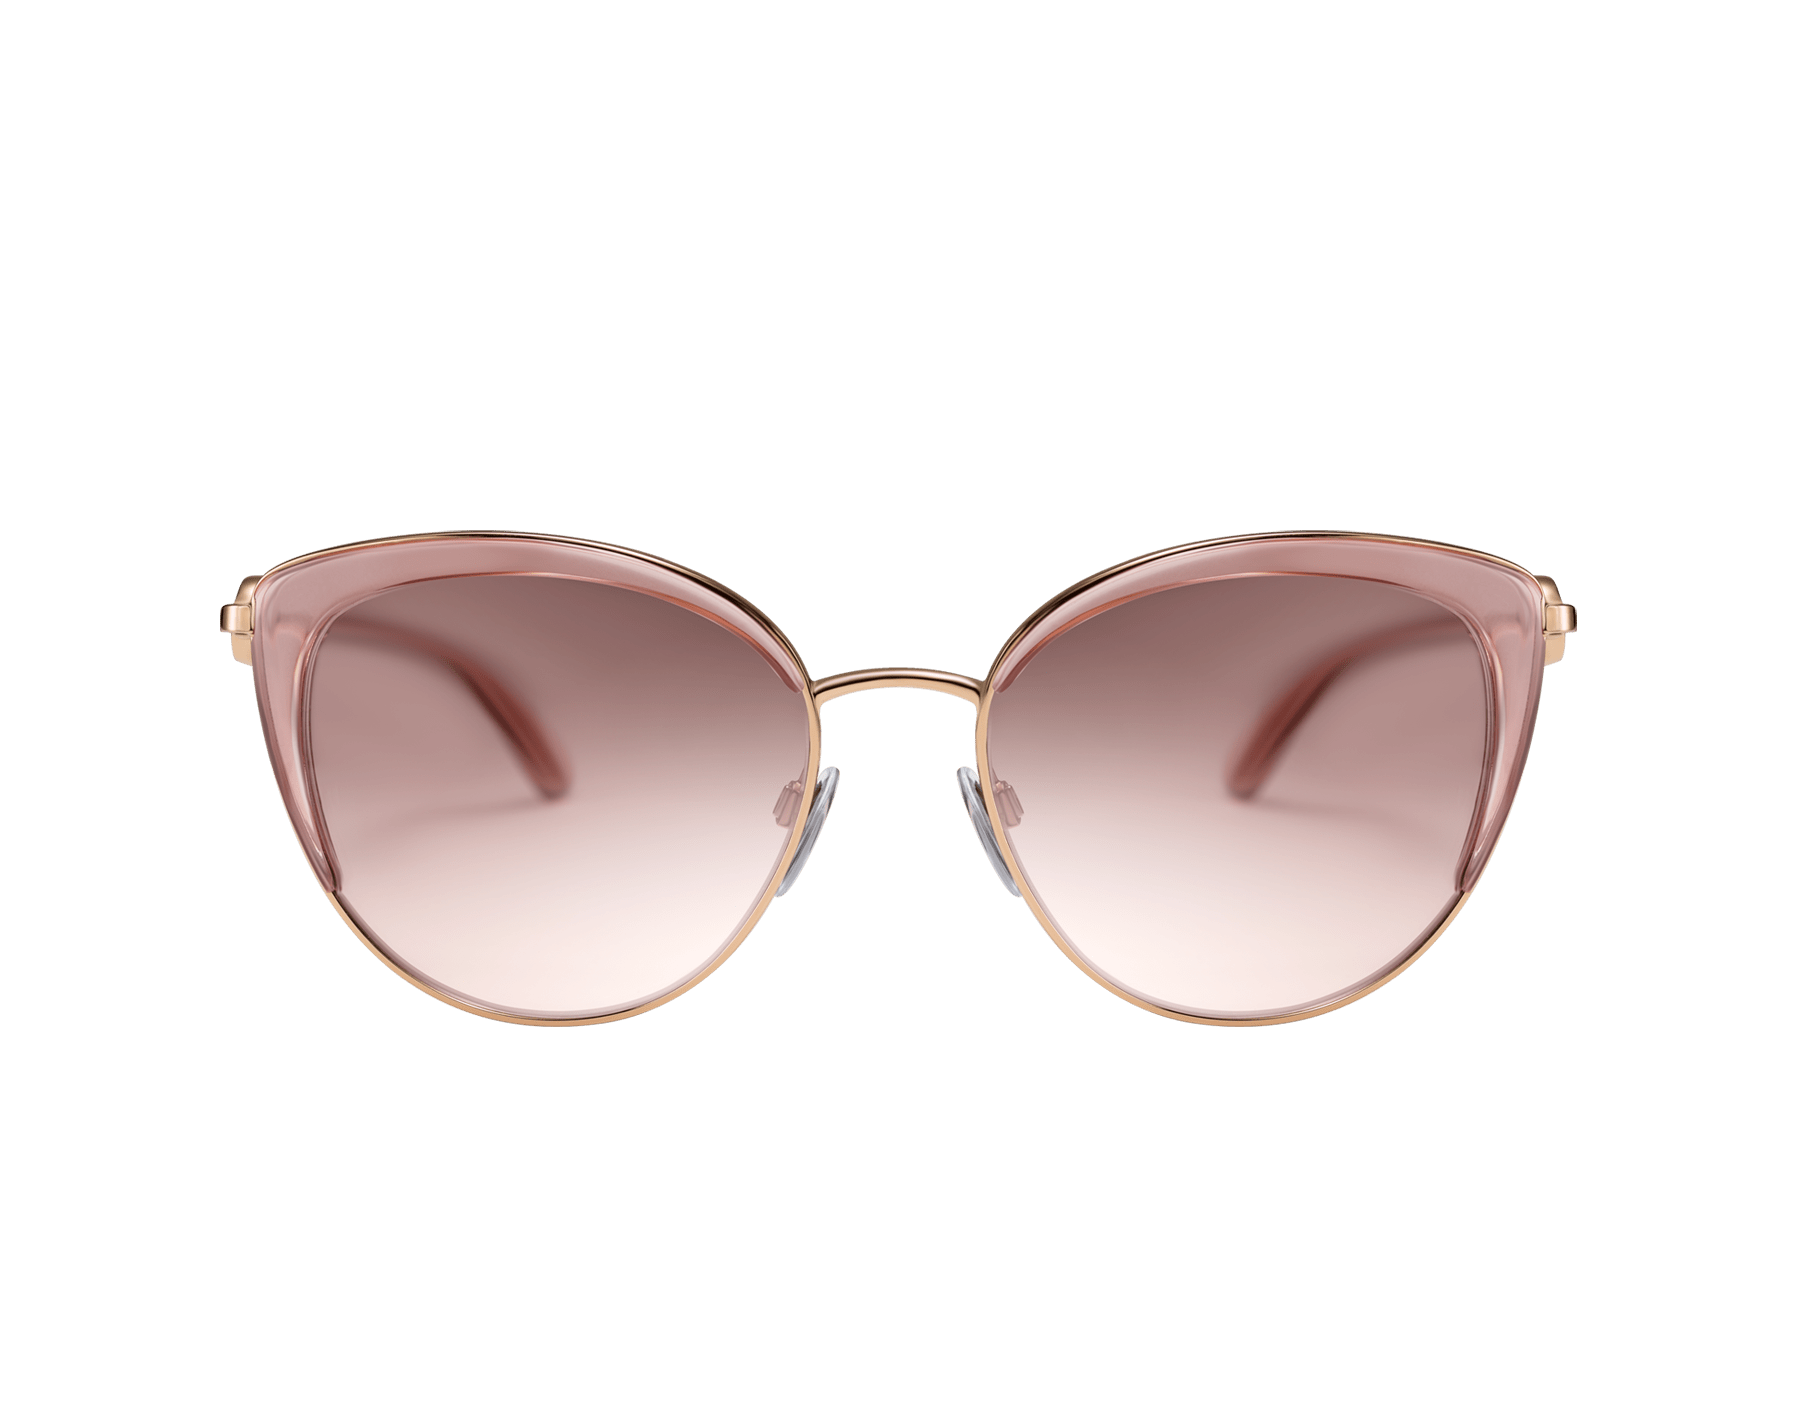 BVLGARI BVLGARI soft cat-eye metal sunglasses featuring a round décor with double logo. 903915 image 2